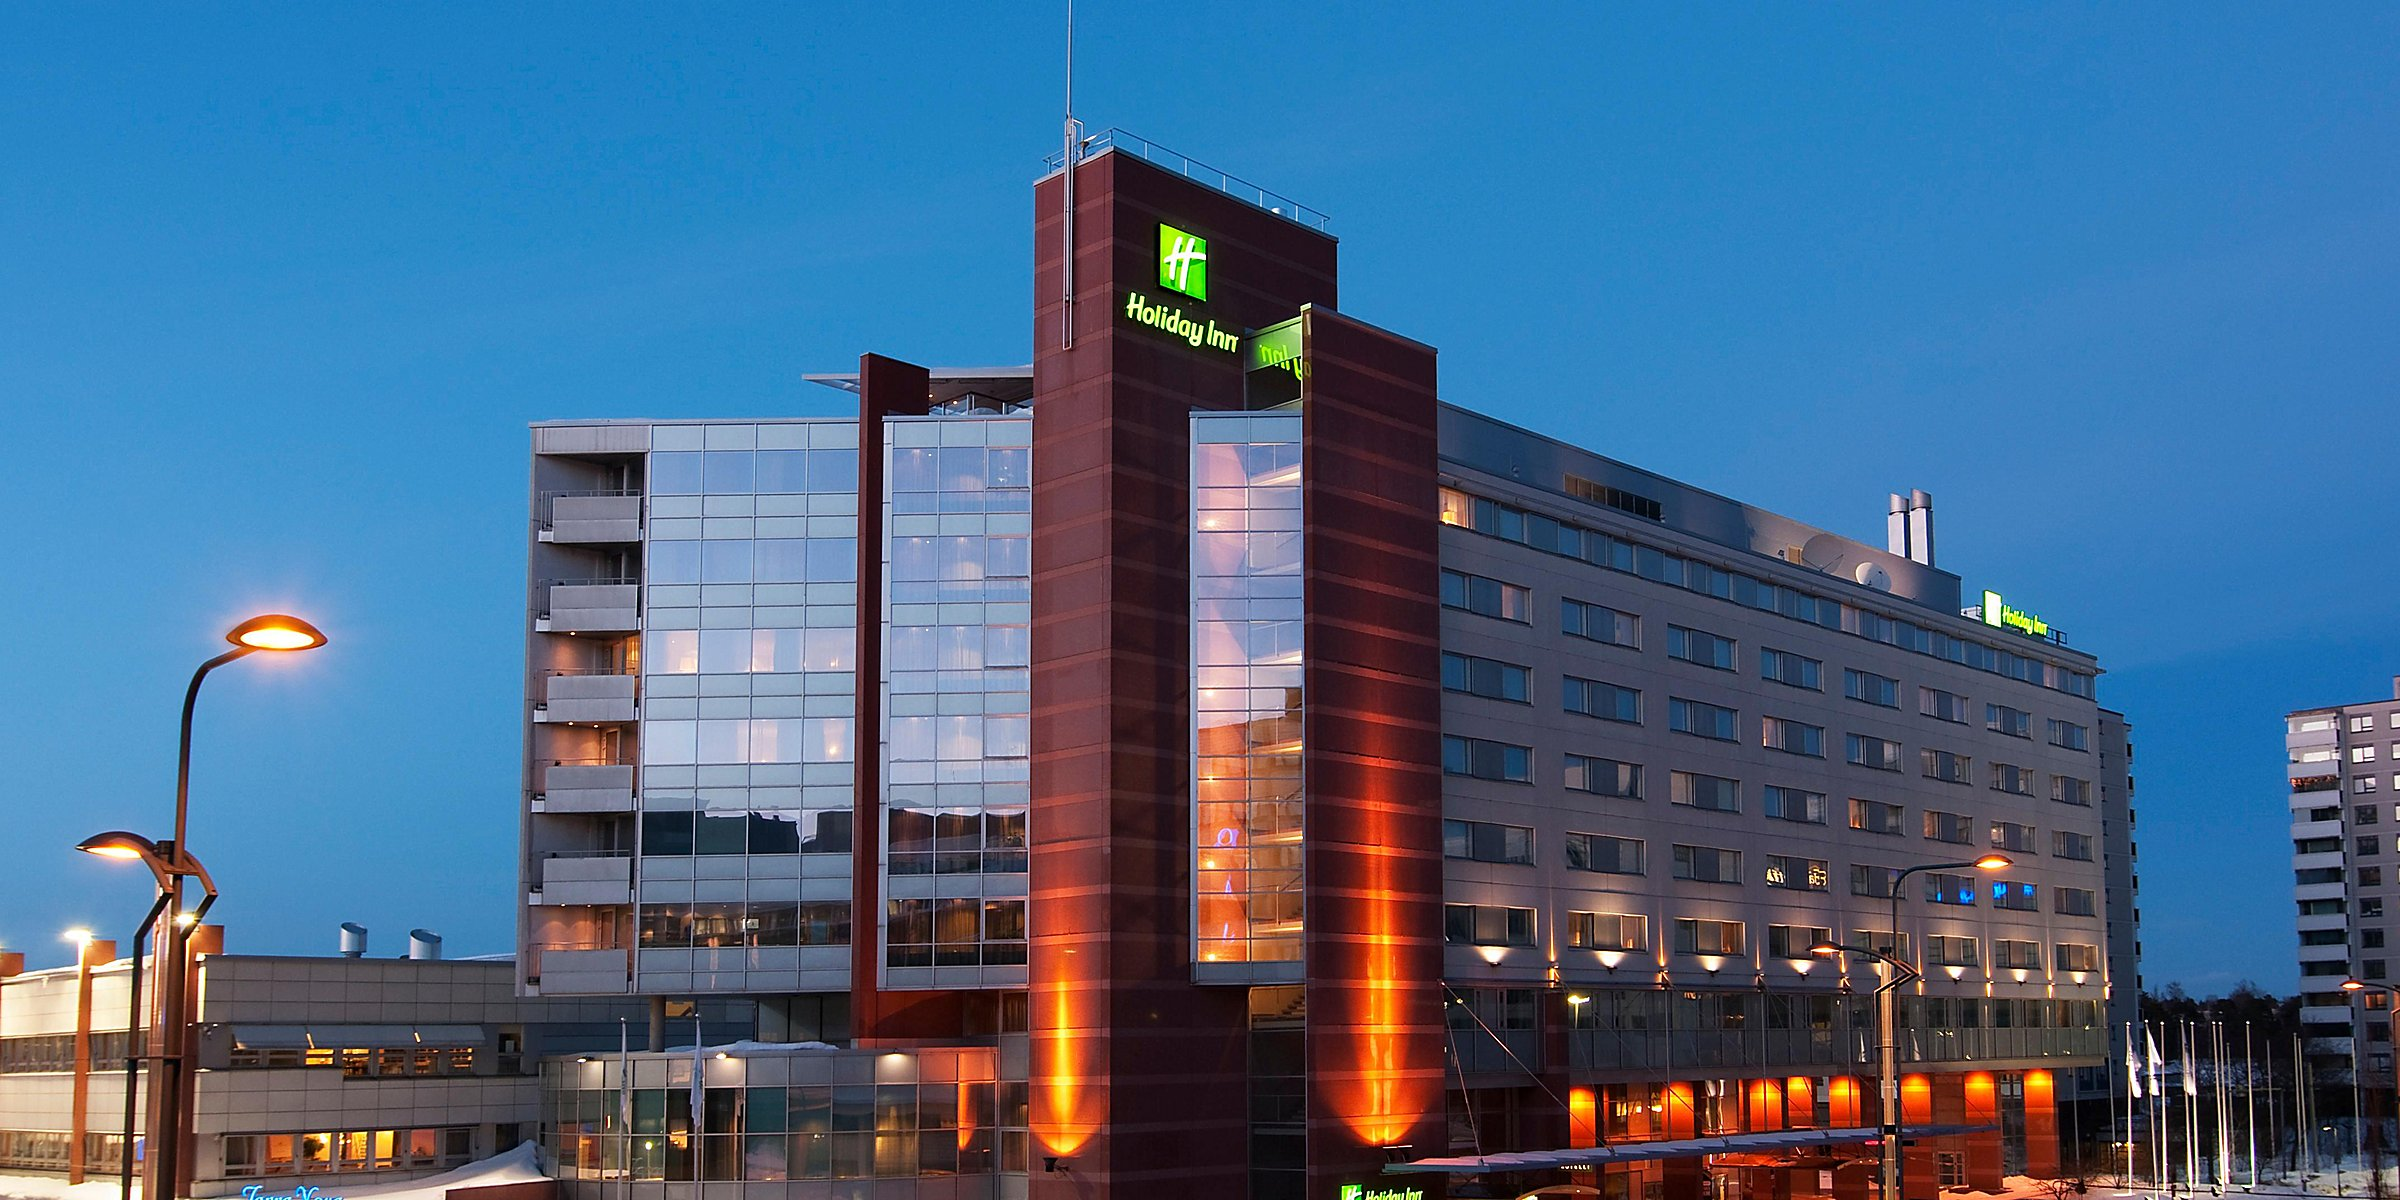 Holiday Inn Hotel Helsinki - Expo | Hotel near Helsinki Exhibition